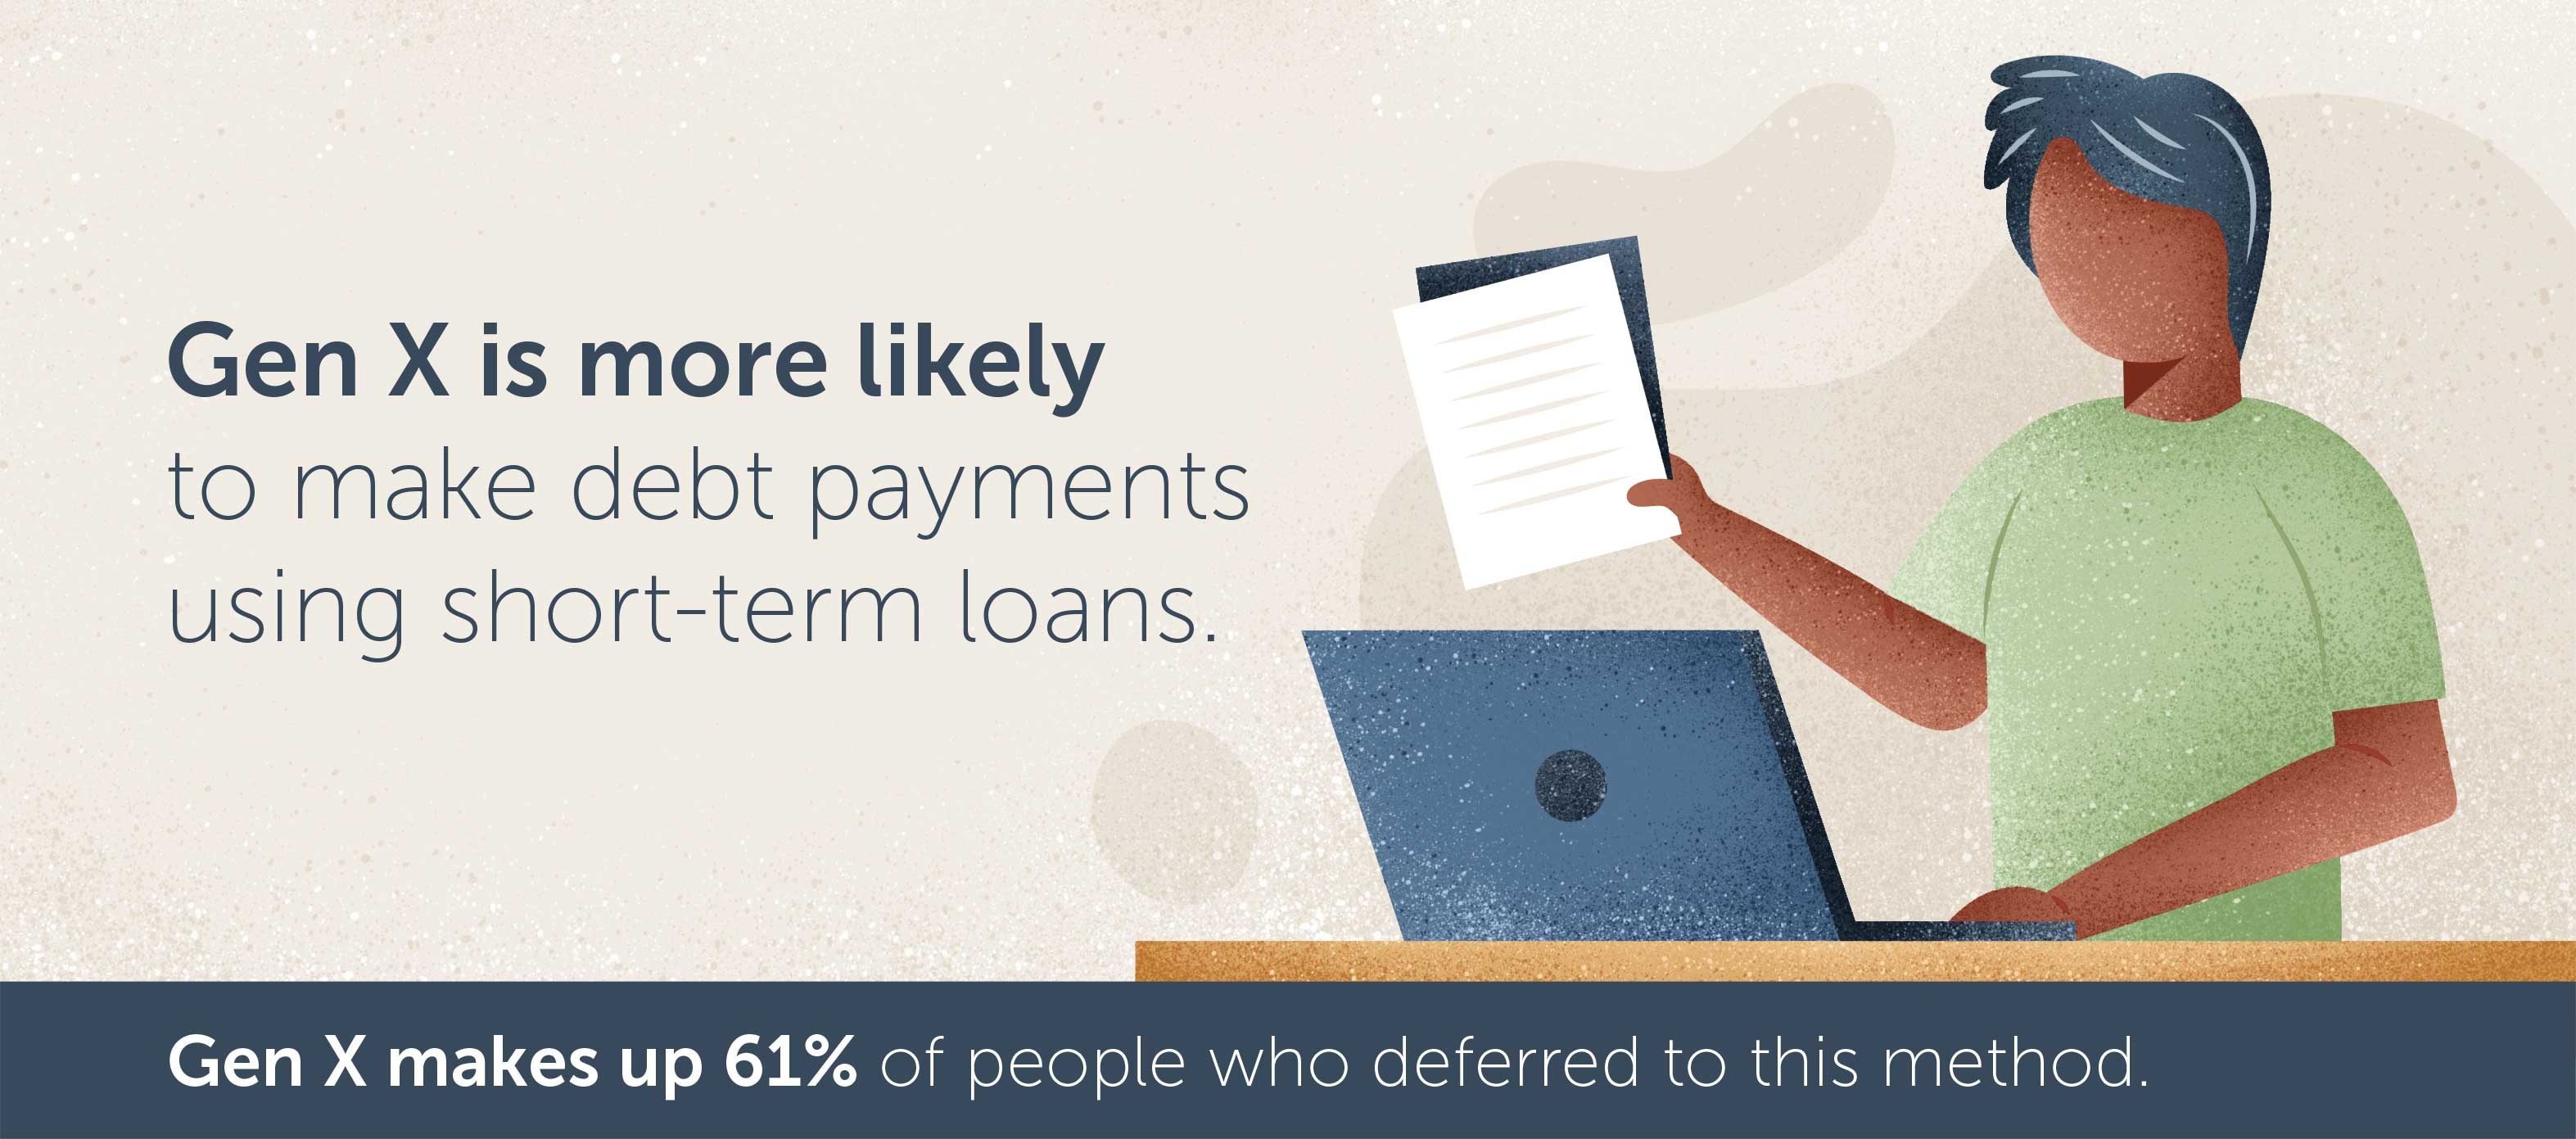 Gen X is more likely to make debt payments using short-term loans